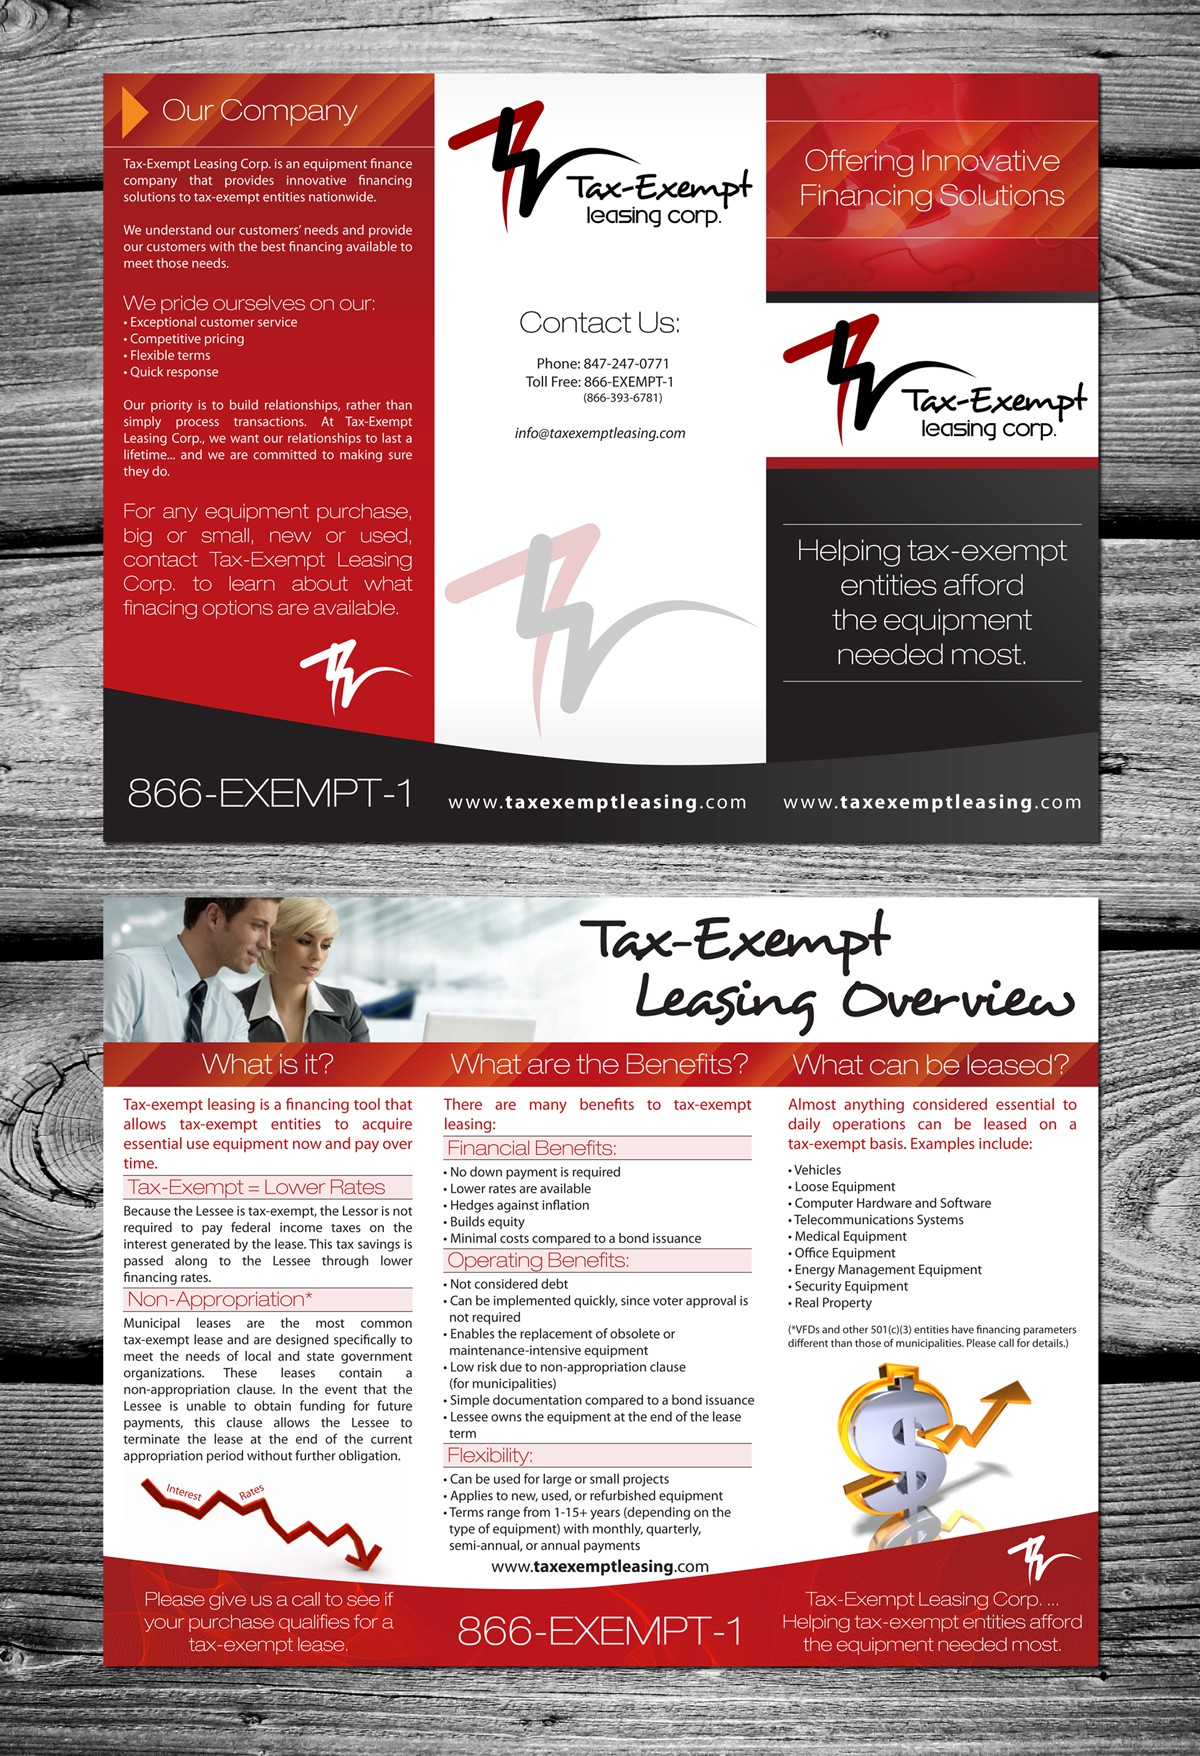 BE CREATIVE - New Brochure and Display for Municipal Leasing Company